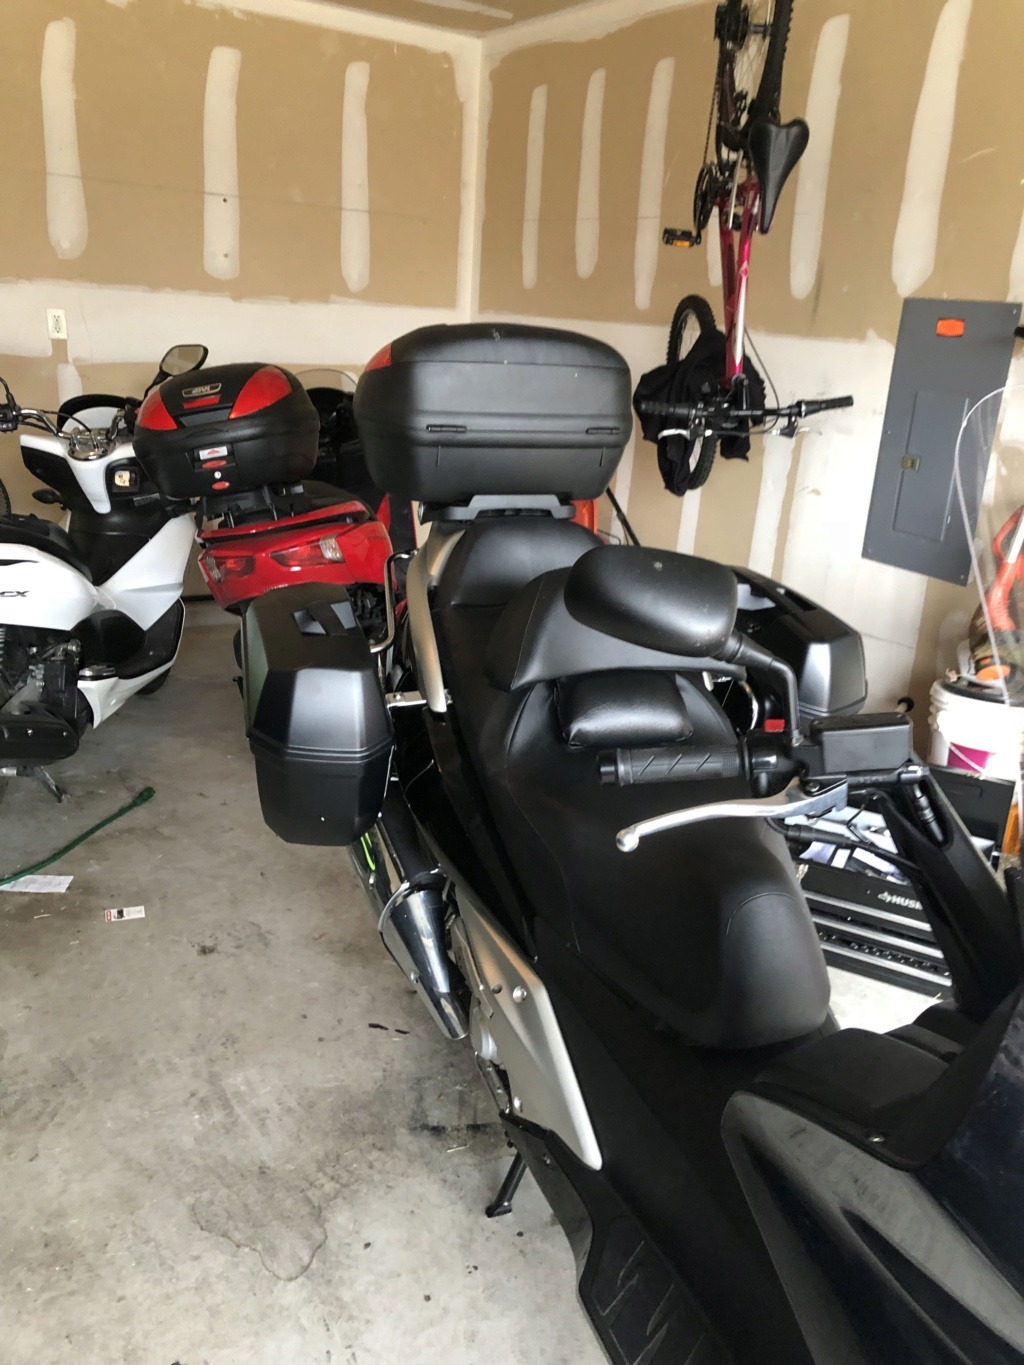 Looking for 7811 ST HO SWT 400/600 (Fehling - Side Case Holder for Givi/Kappa (Monokey) Case) New or Old Img_0013